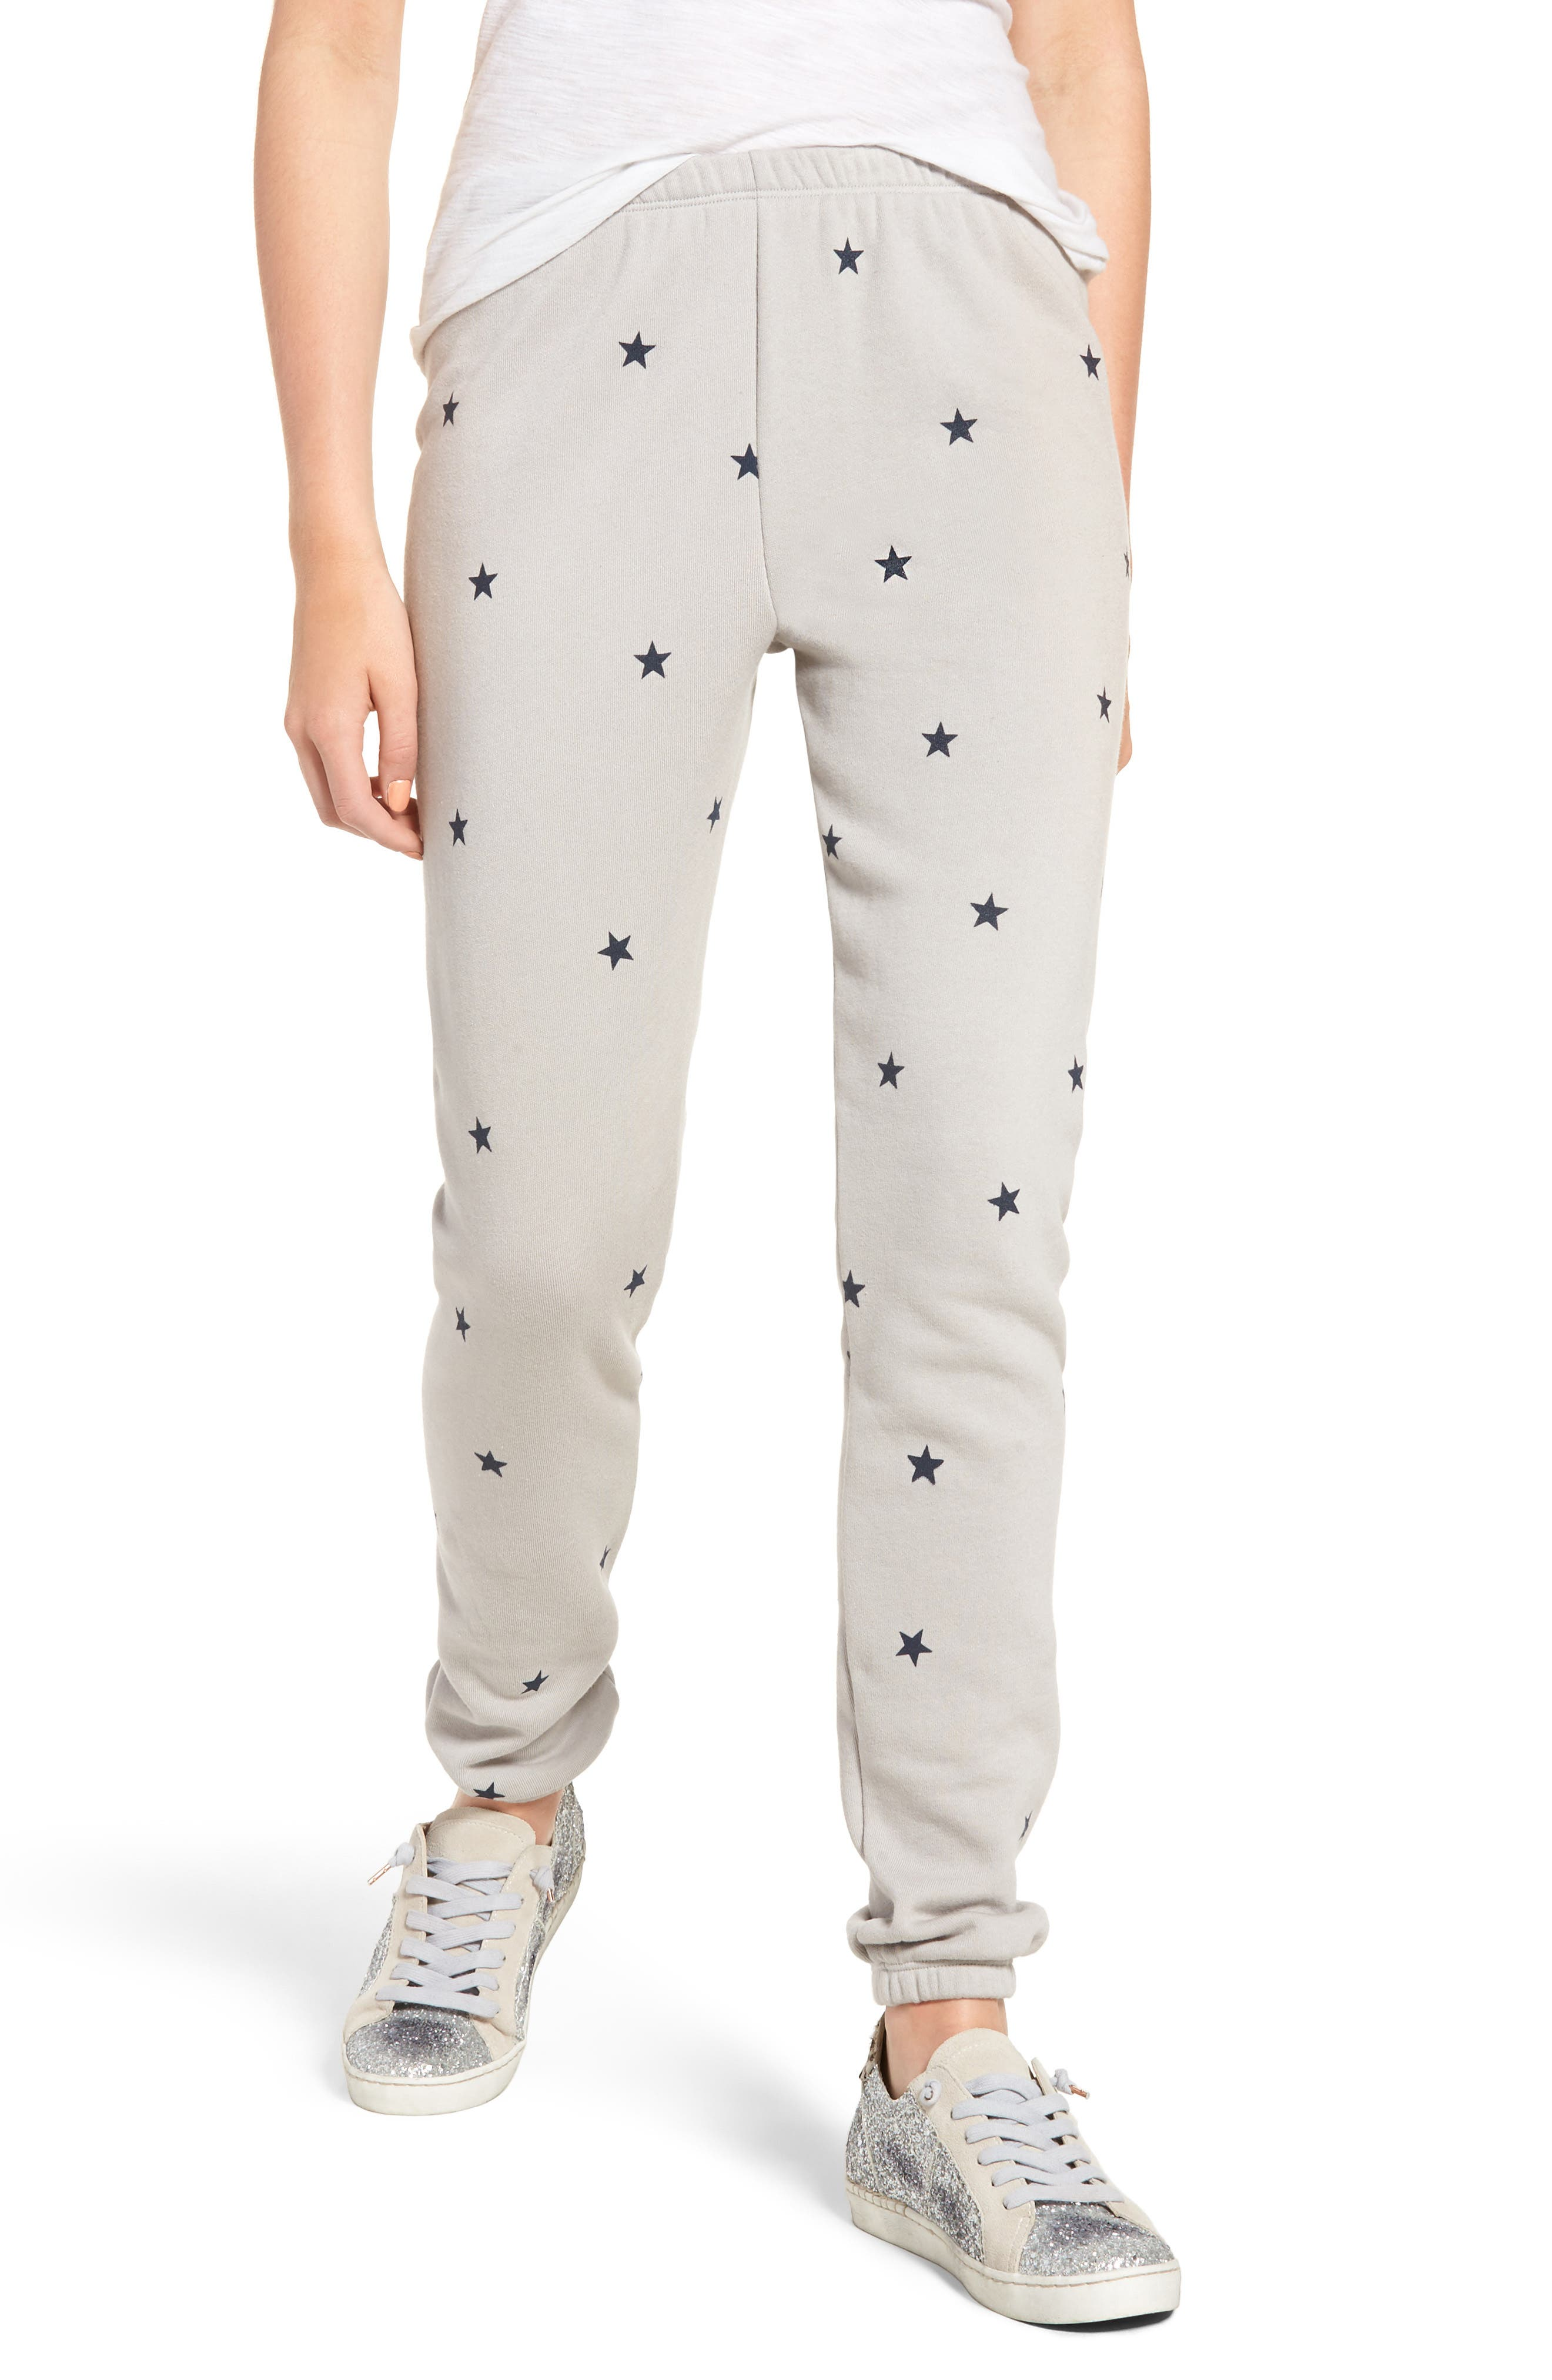 Football Star Knox Sweatpants,                             Main thumbnail 1, color,                             Cowboy Grey